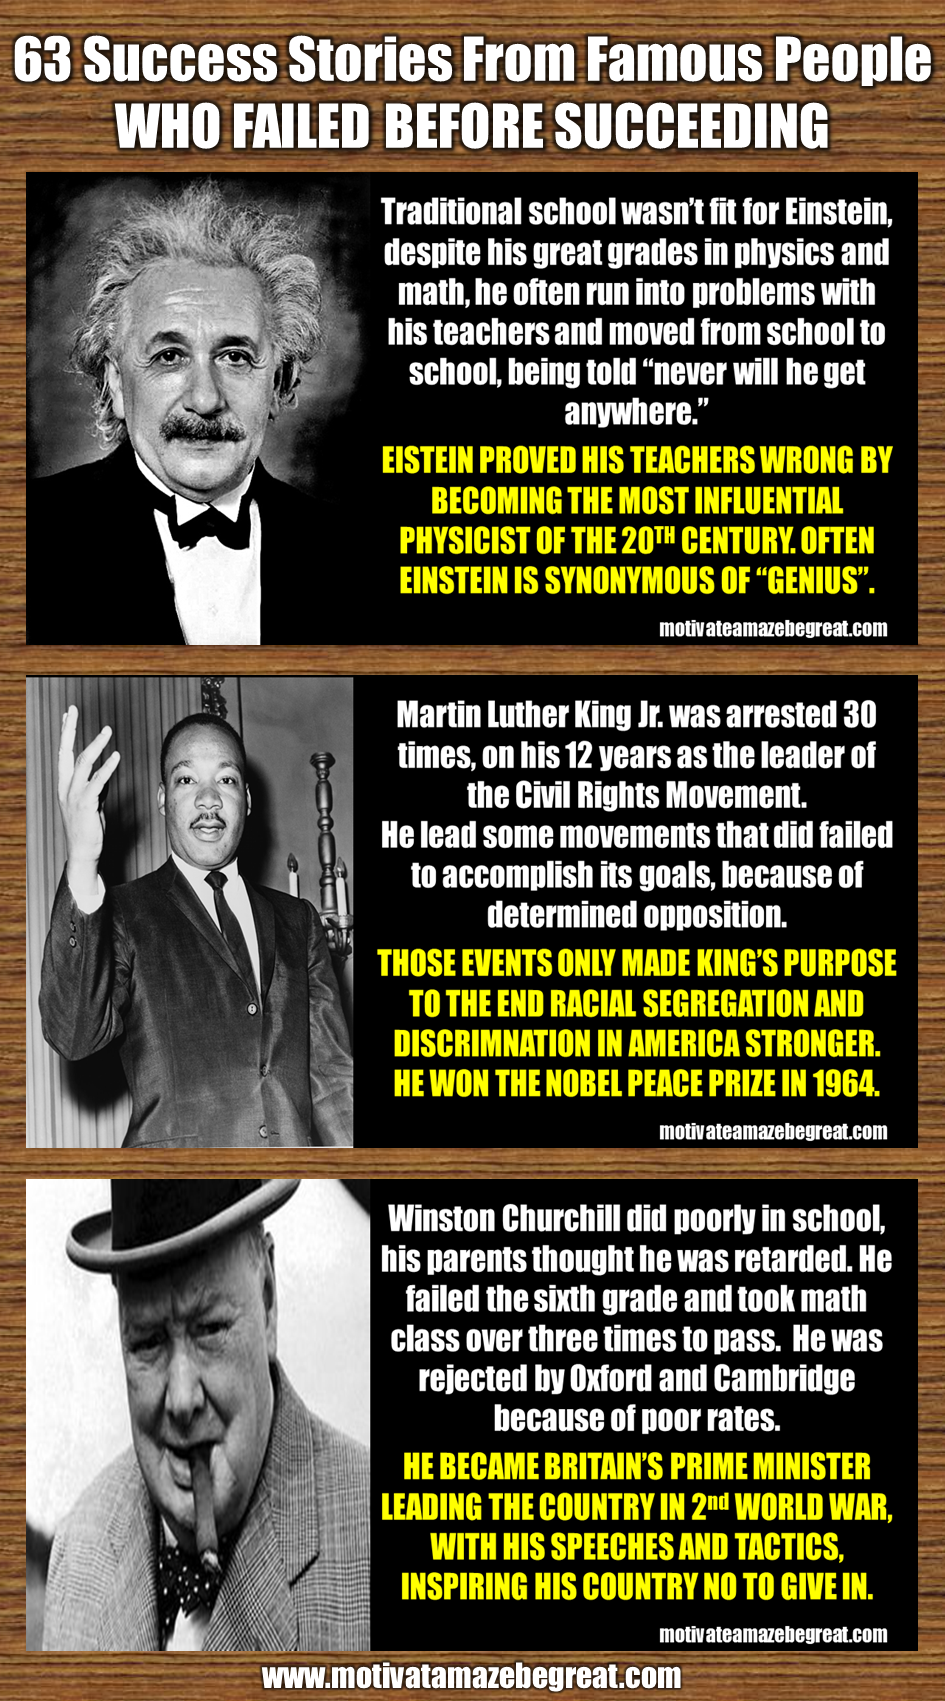 63 Success Stories From Famous People Who Failed Before Succeeding